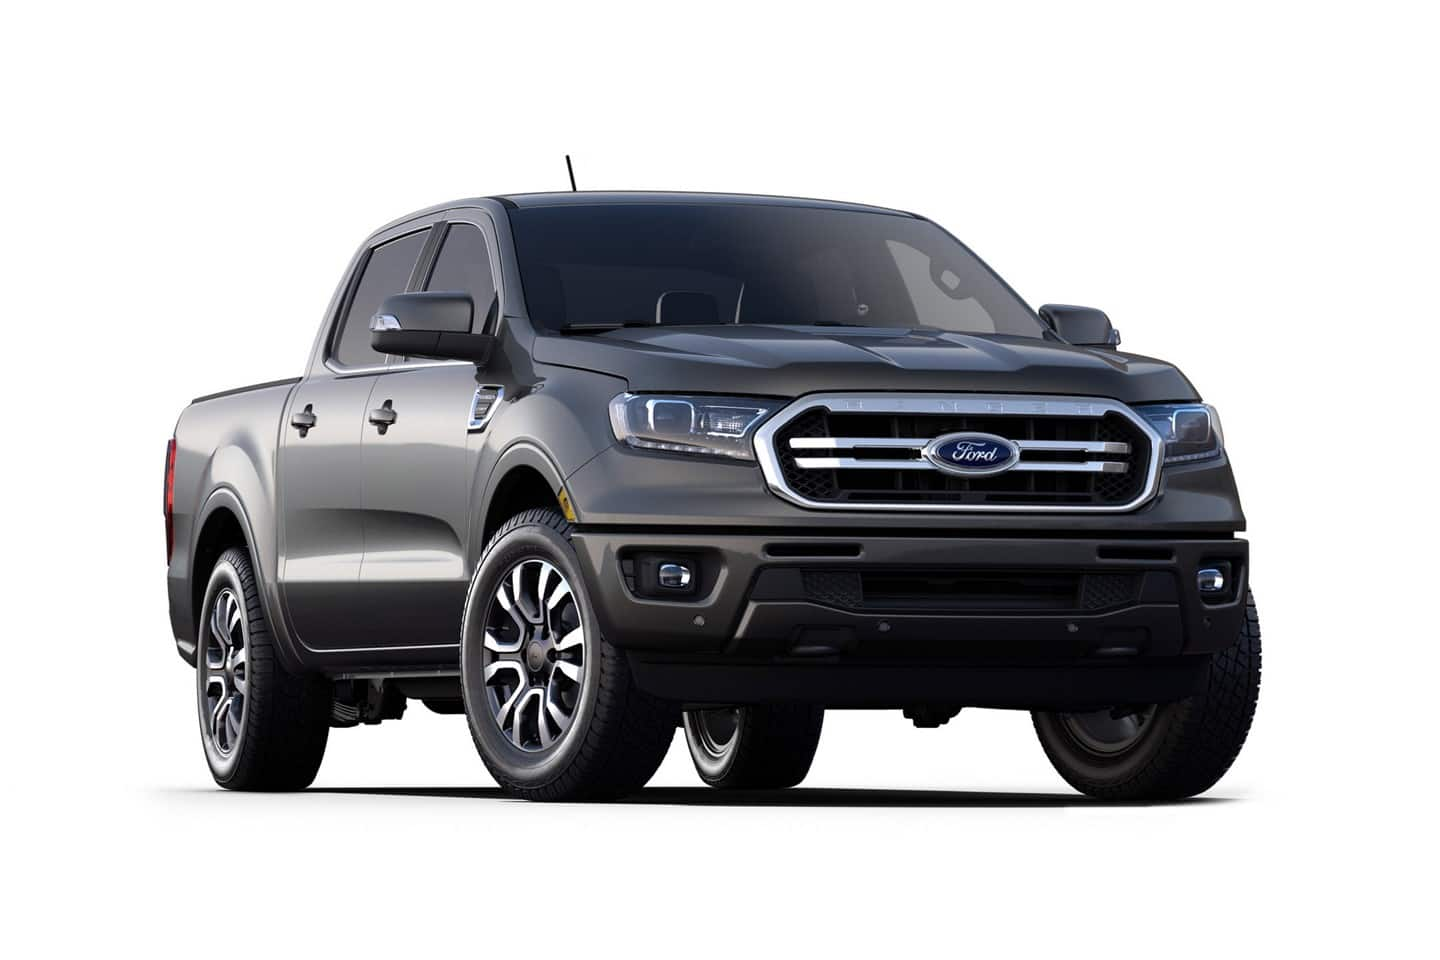 98 Best 2019 Ford Ranger Engine Options Photos